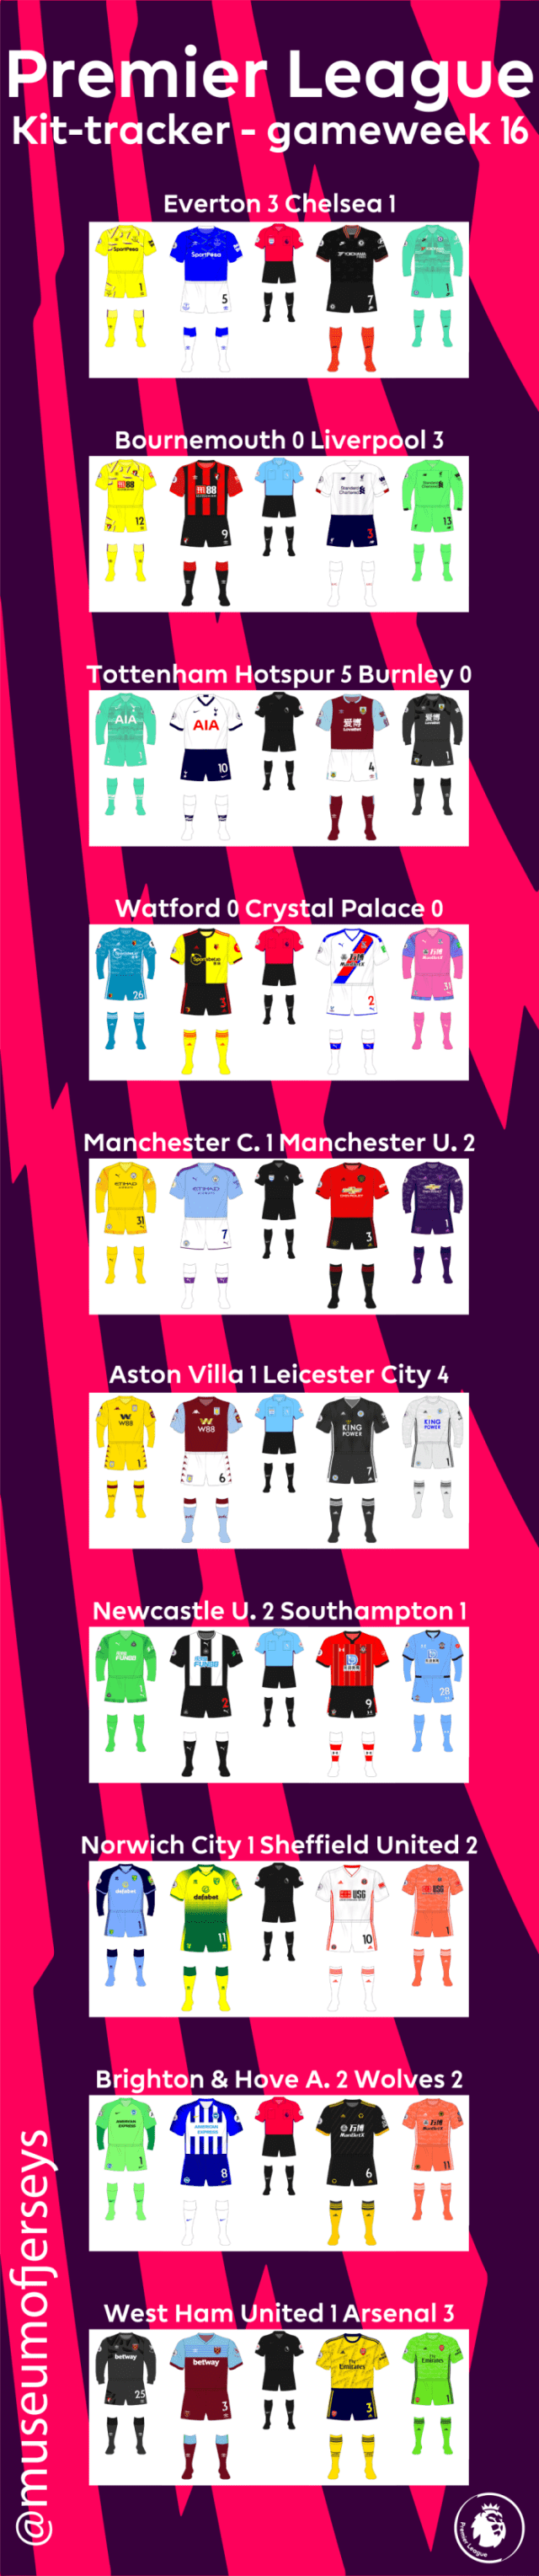 2019-2020-Premier-League-Kit-Tracker-Gameweek-16-long